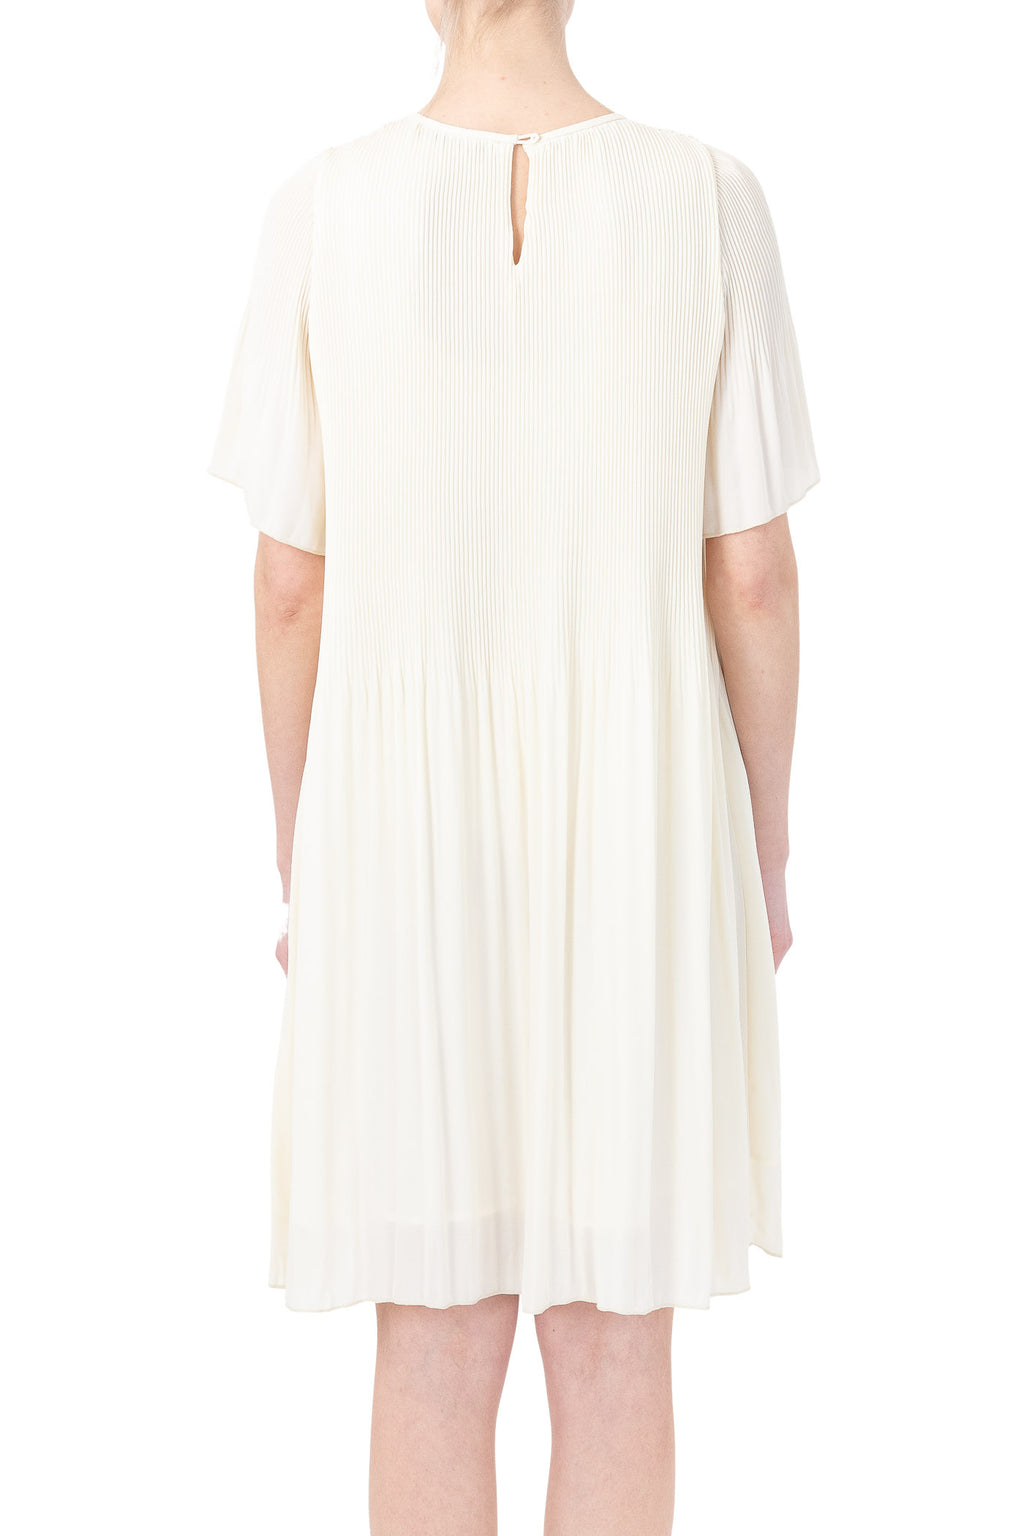 Cathrine Hammel - Miami Dress w/short sleeves